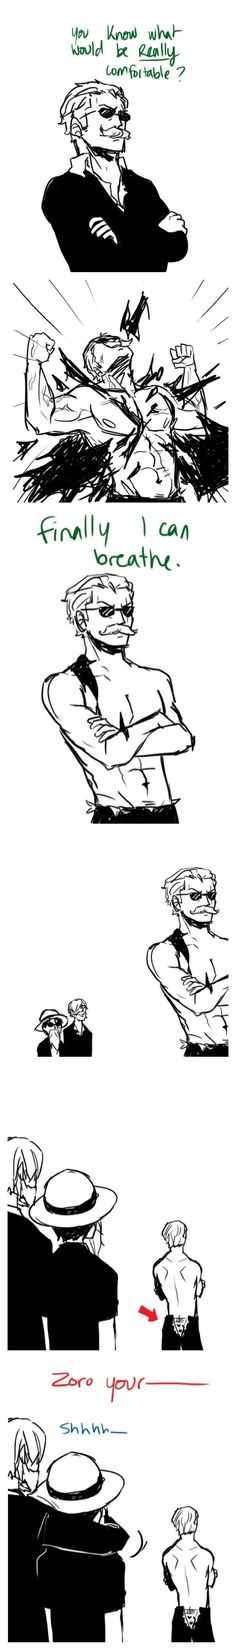 "Little cute ass, Zoro :3 and love how Sanji's just like ""shhh let him spoil his image"""